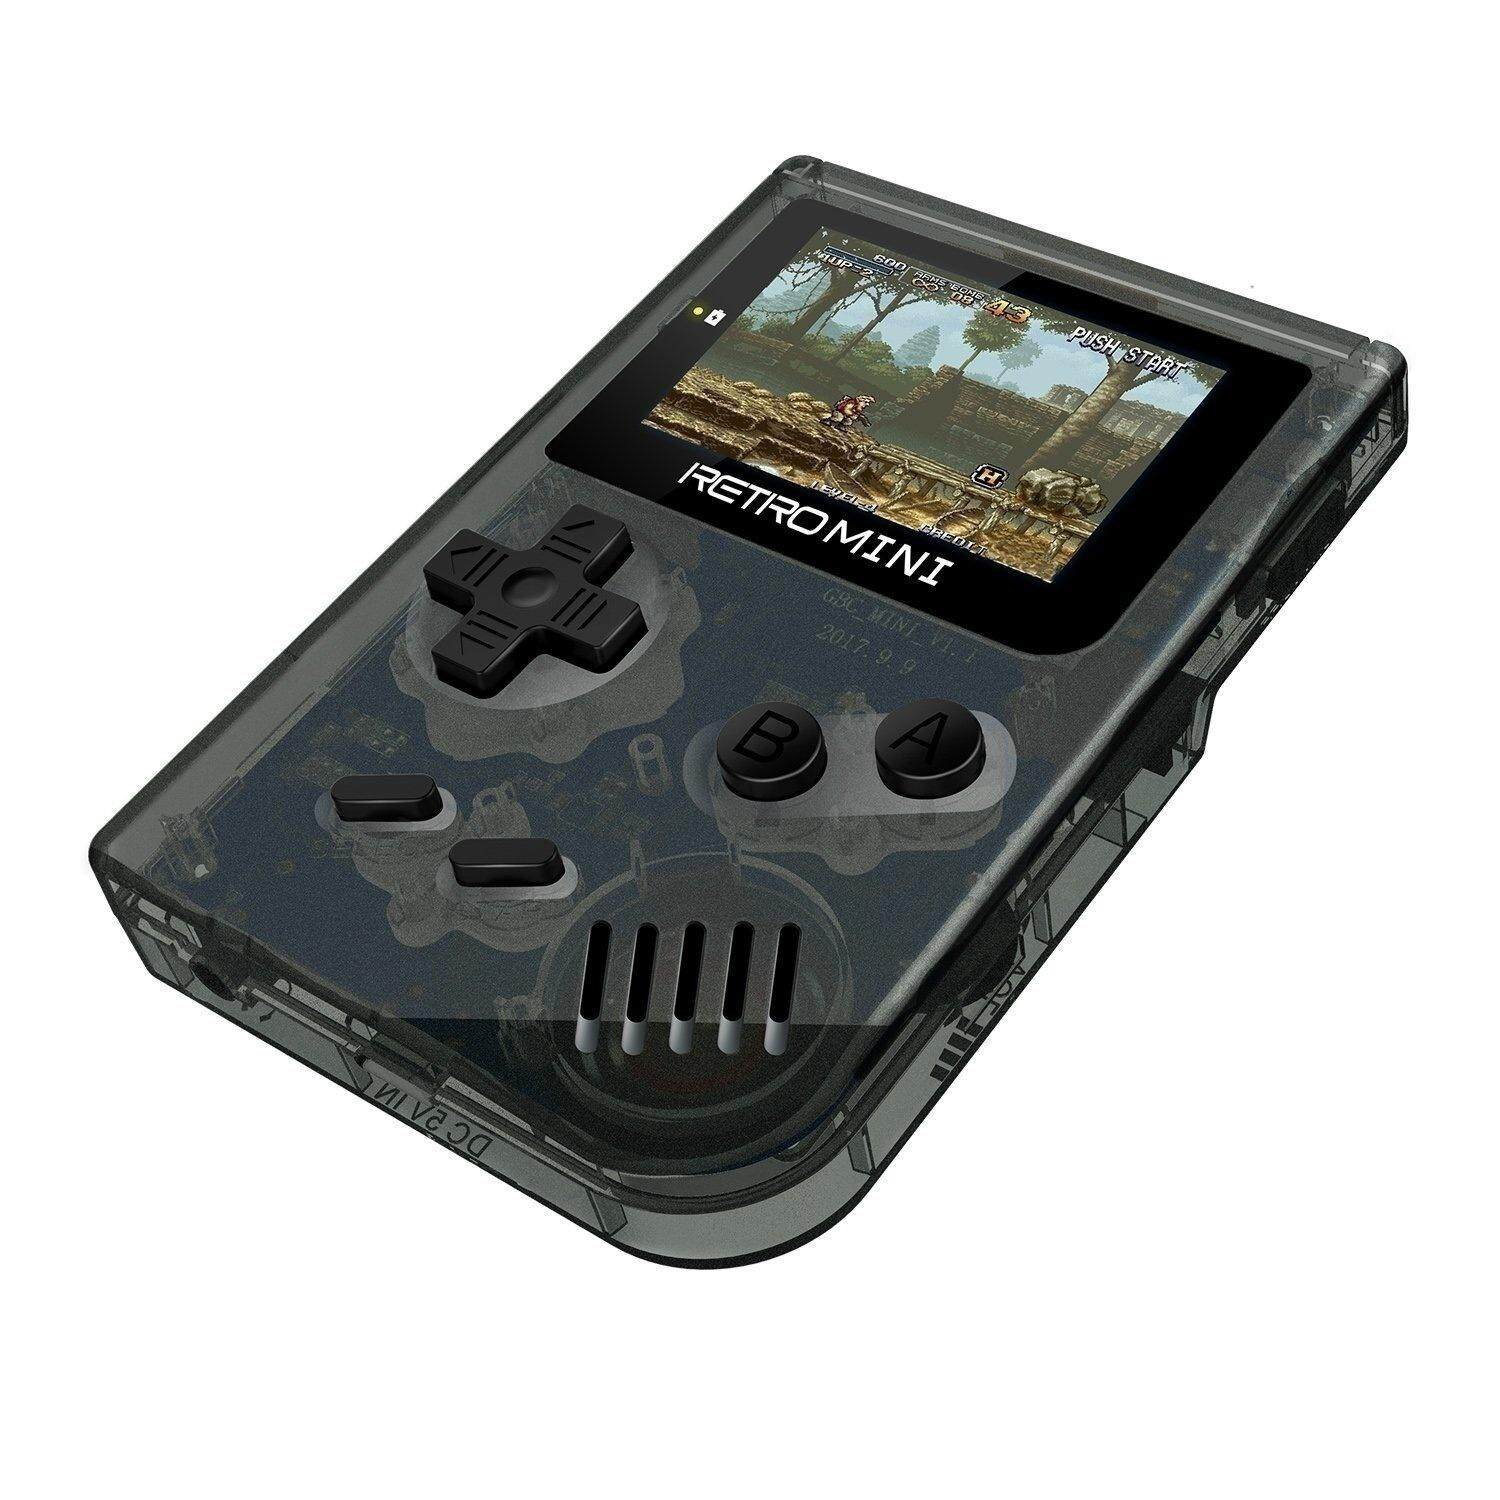 Retro Game Console 32 Bit Portable Mini Handheld Game Players Built-In 940 For Gba Classic Games Best Gift For Kids Black By Tobbehere.